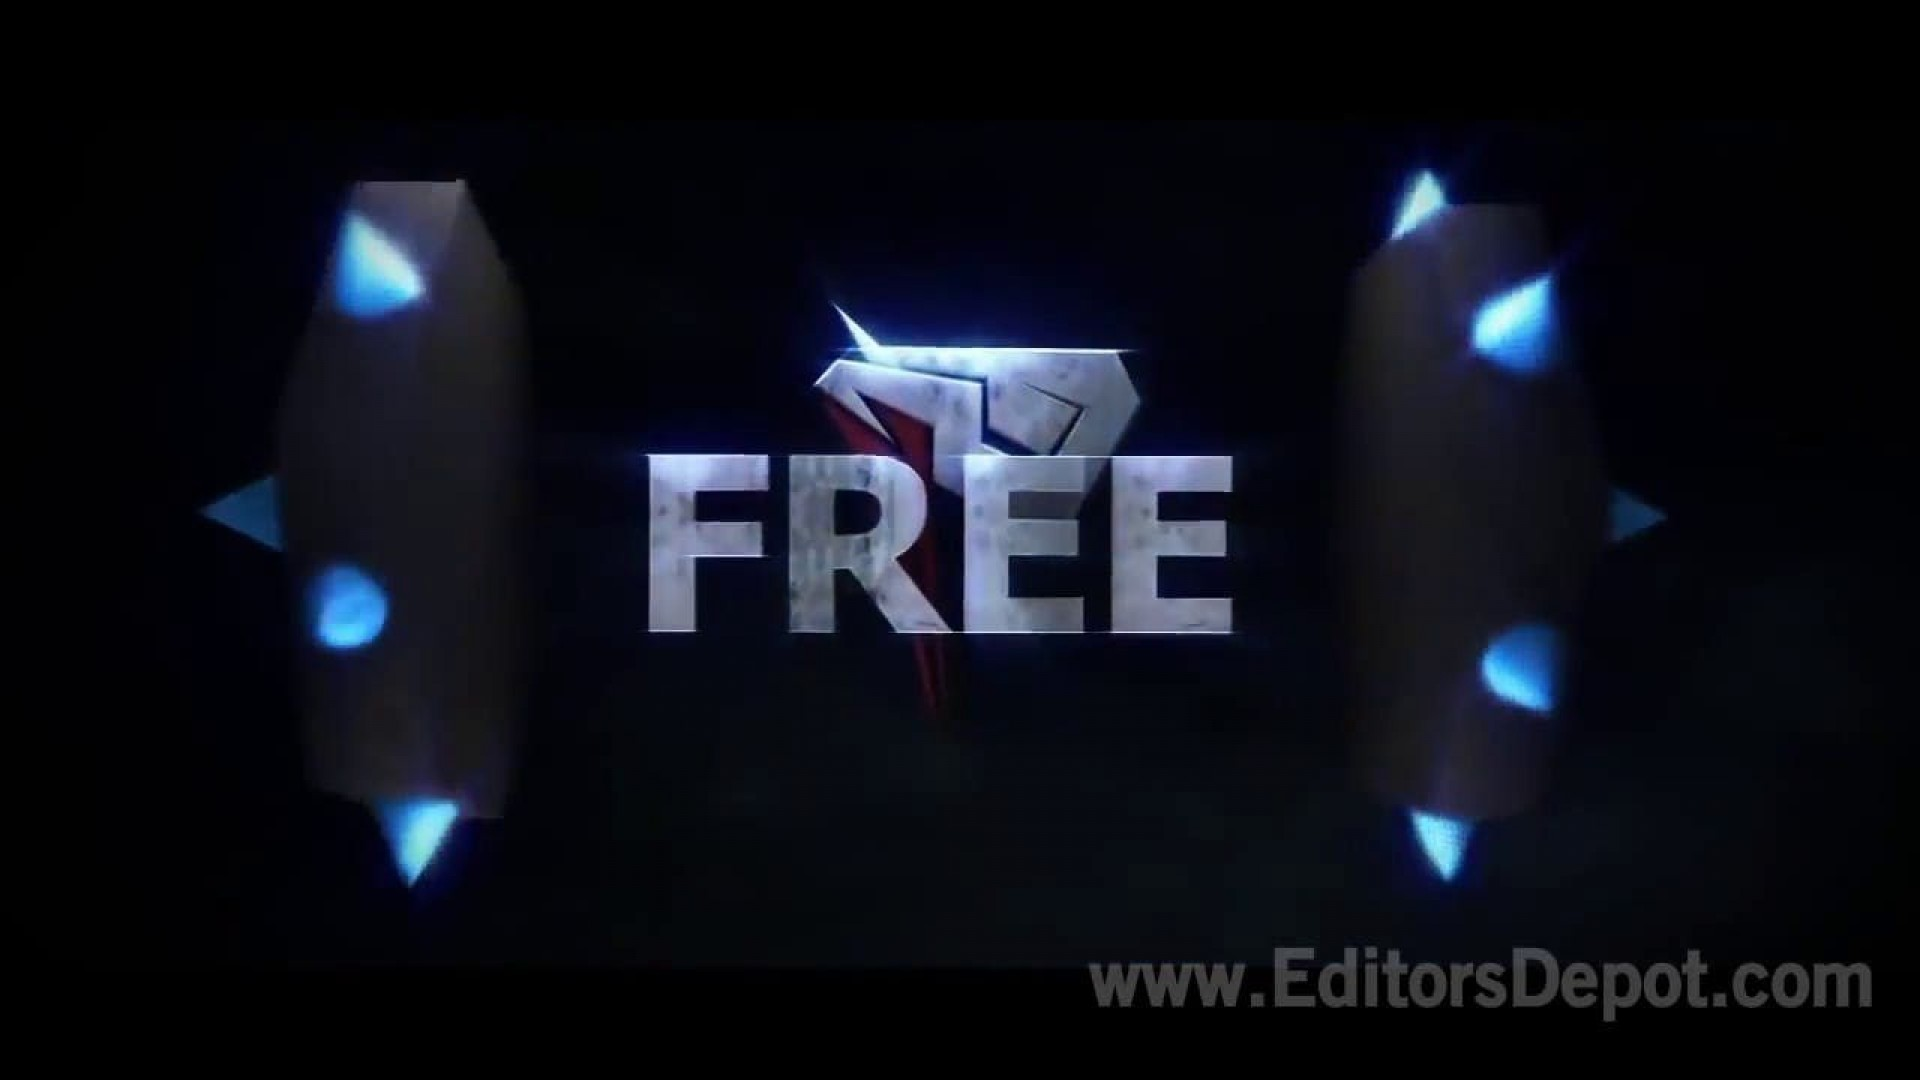 000 Impressive Free After Effect Template Particle Logo Reveal Download Sample  -1920